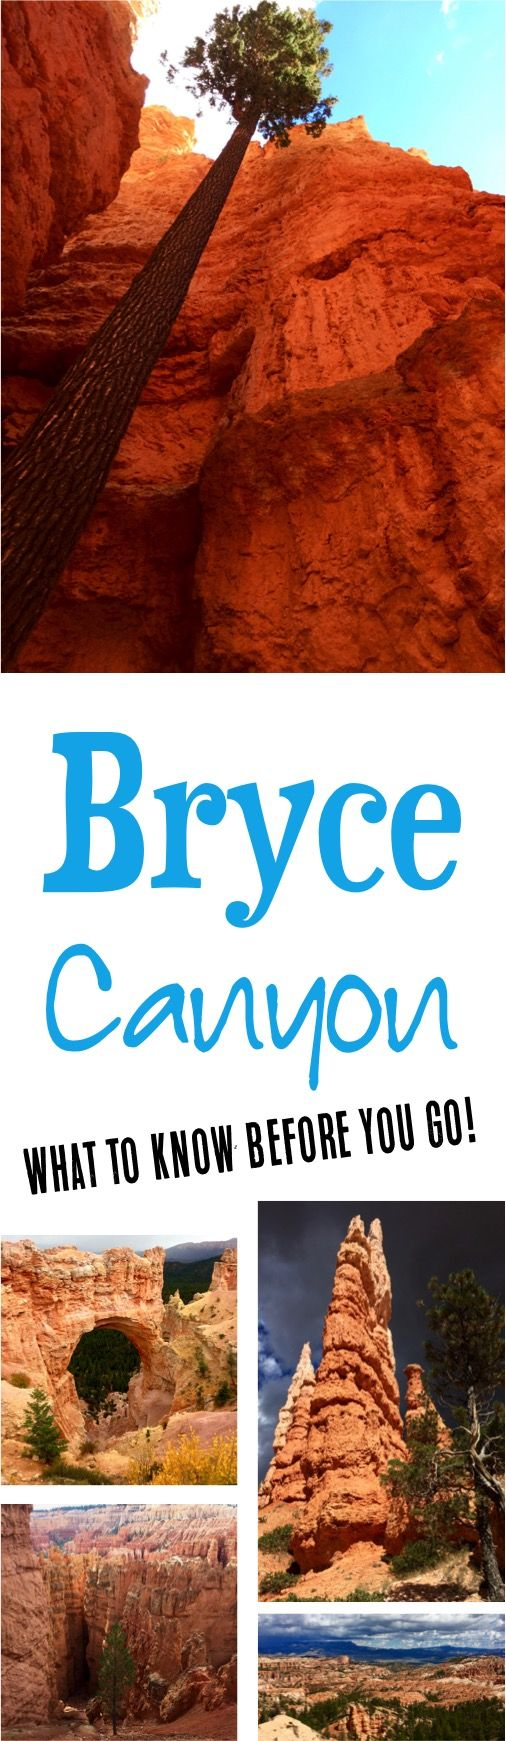 Bryce Canyon Utah!  Best Bryce Canyon hikes, viewpoints, what to wear + more! | NeverEndingJourneys.com